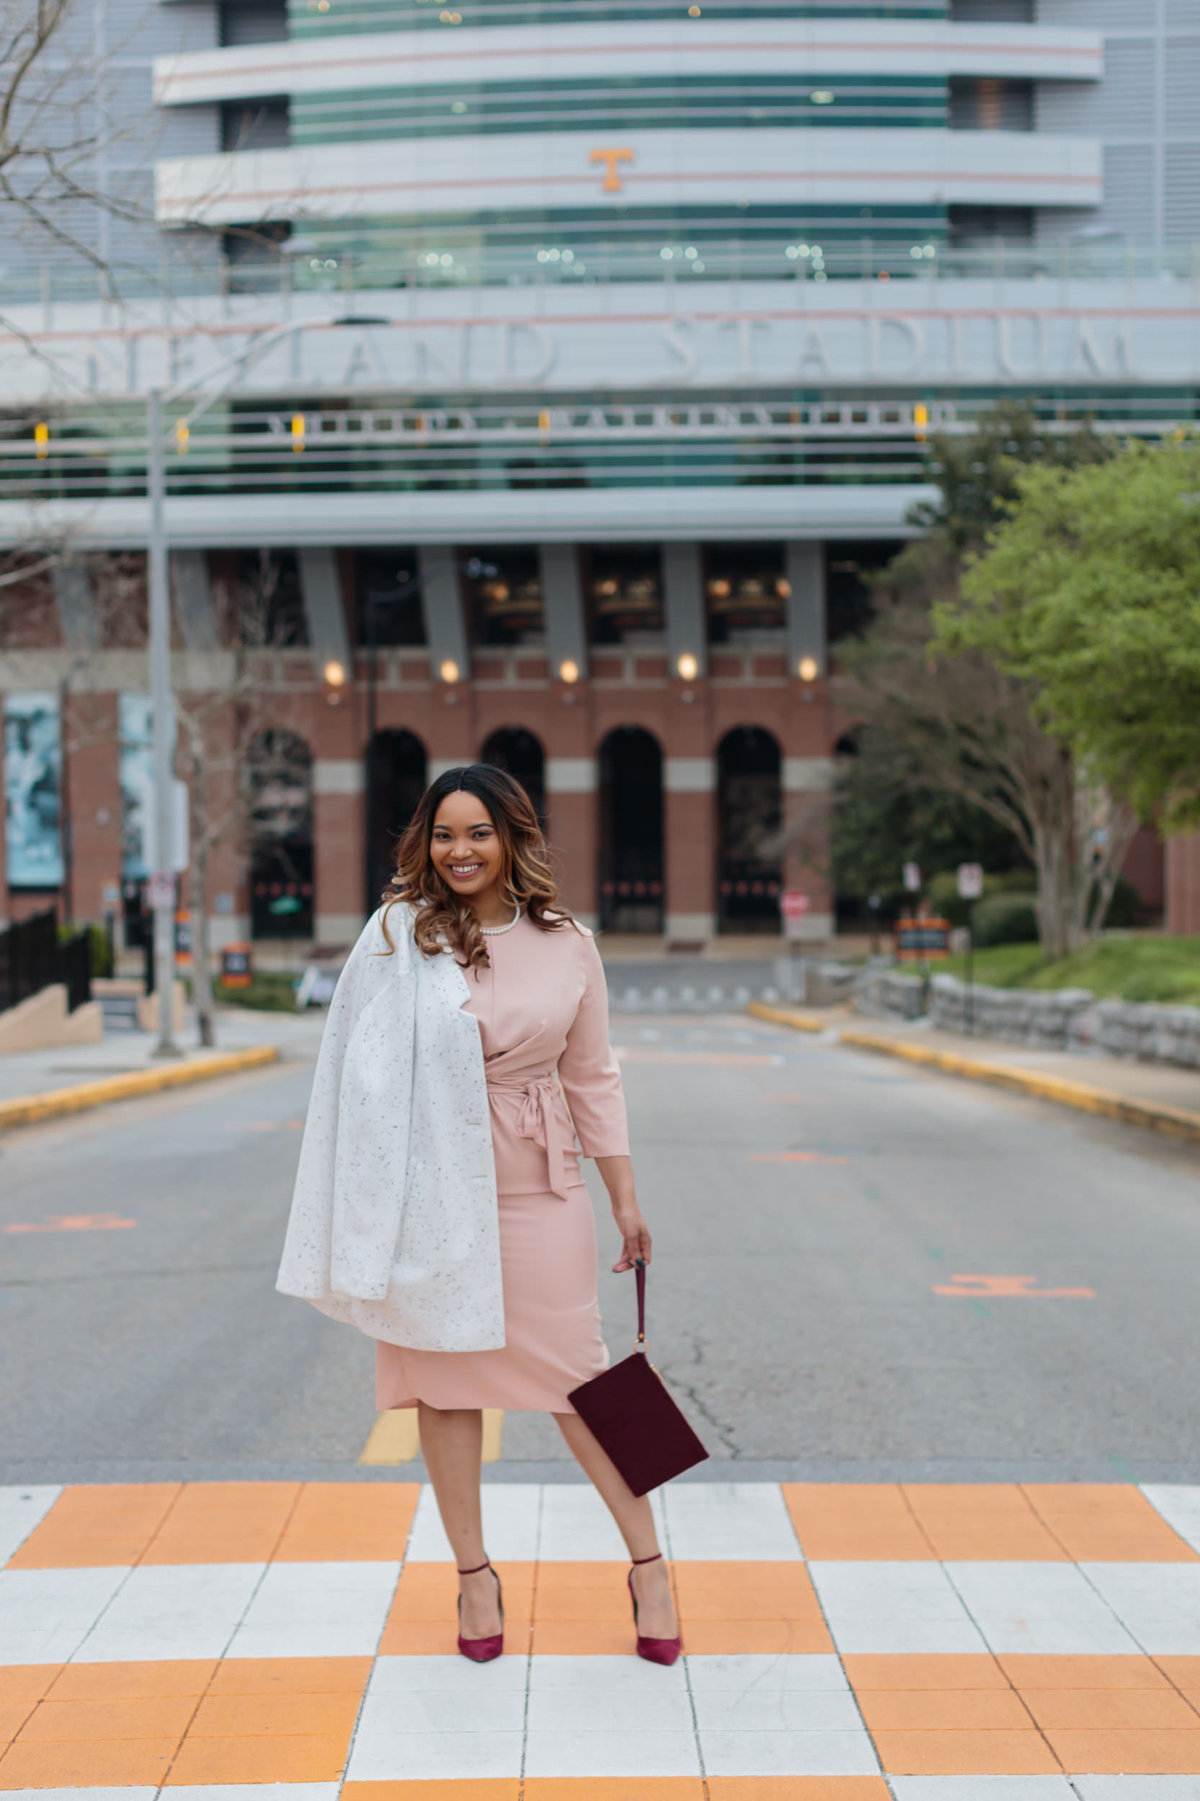 Knoxville - Grad Photos - Dora - Krista Bolt Photography 2019-31